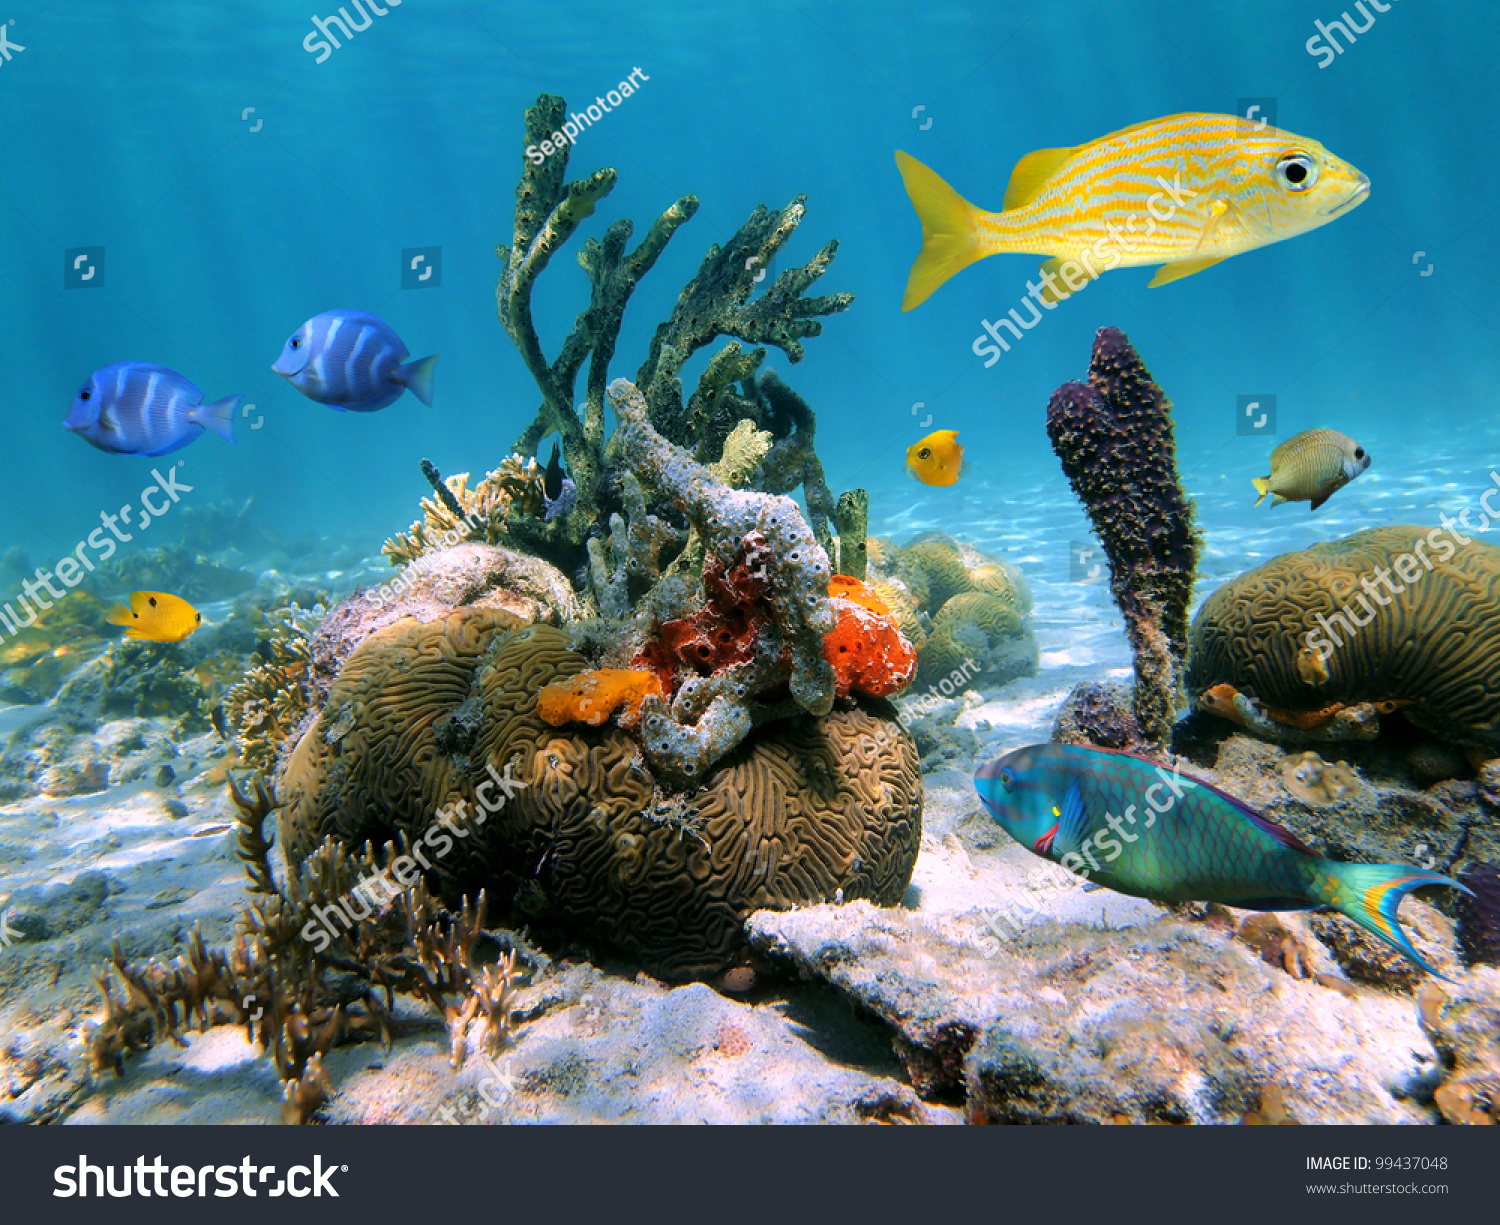 Colorful Tropical Sea Life Underwater In Caribbean Stock ... |Colorful Underwater Life